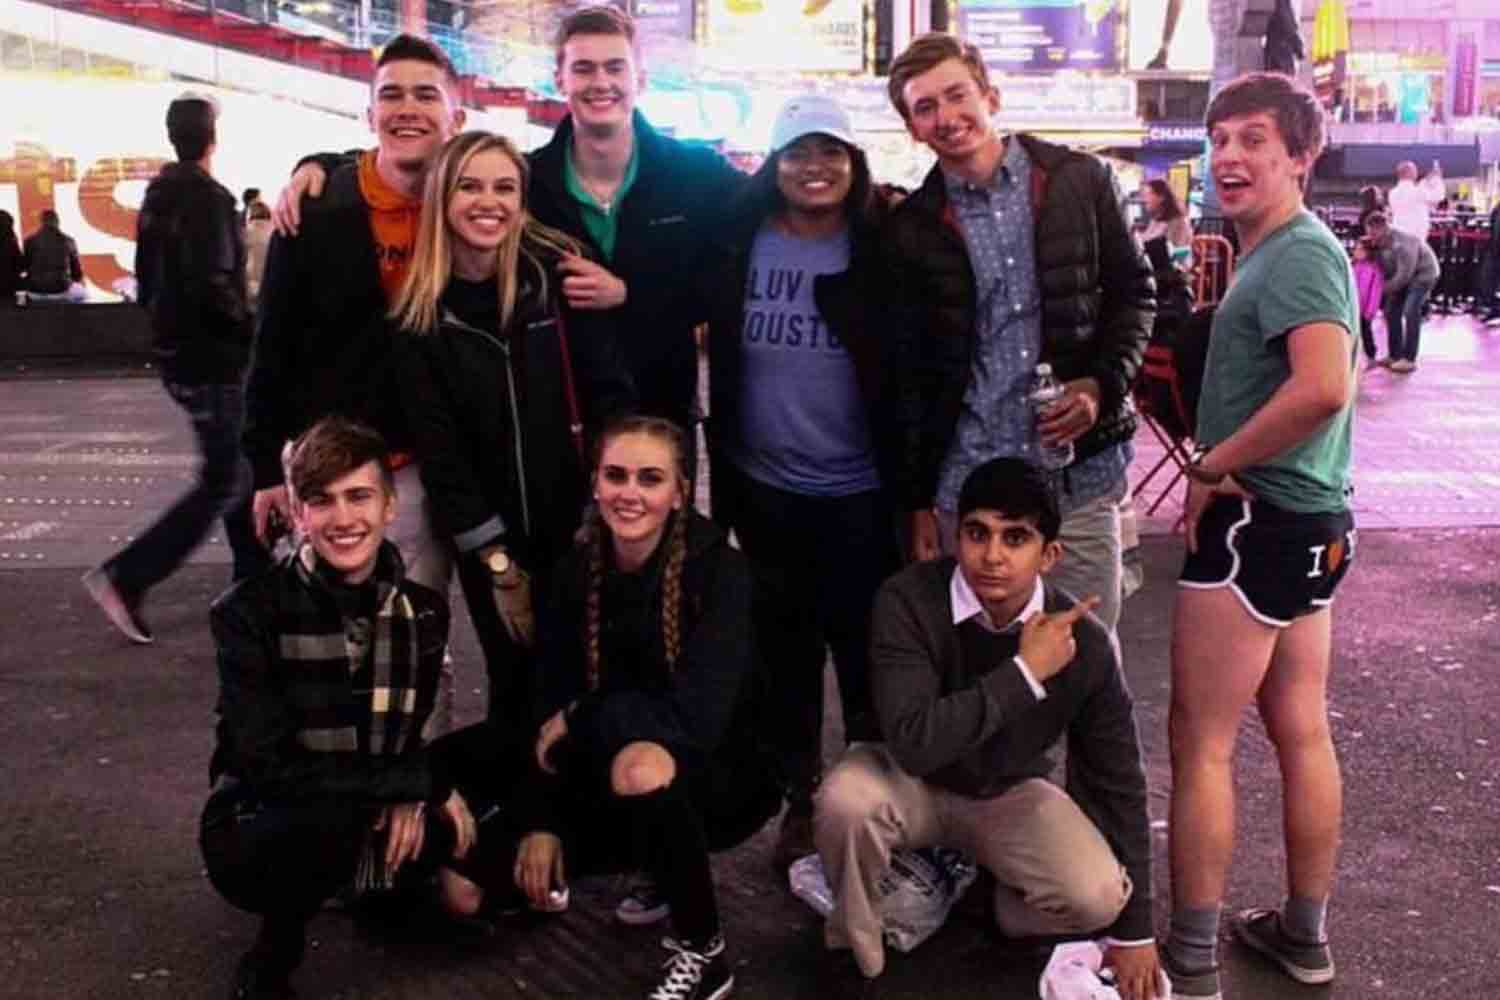 Standing in Times Square on March 17, 2016, Wingspan staff members pose for a group picture on their last night in the Big Apple after receiving a 2016 CSPA Silver Crown Award. FRONT ROW: Henry Youtt, Maddie Owens and Arman Kafai. BACK ROW: Josh Gray, Halle Barham, Alex Moore, Sarah Philips, Chase Fritz and Jay Schlaegel.